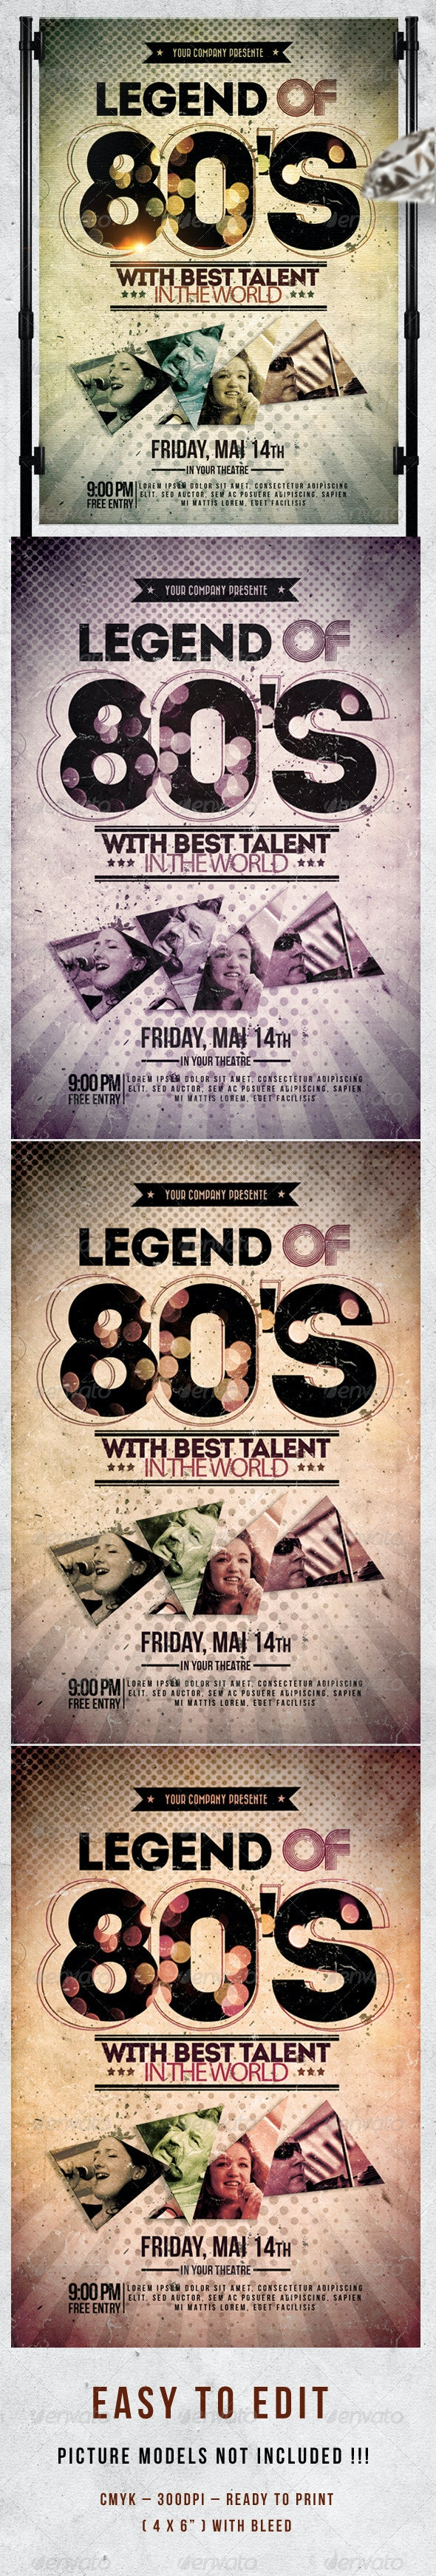 Legend Of 80'S  Flyer Template - Events Flyers